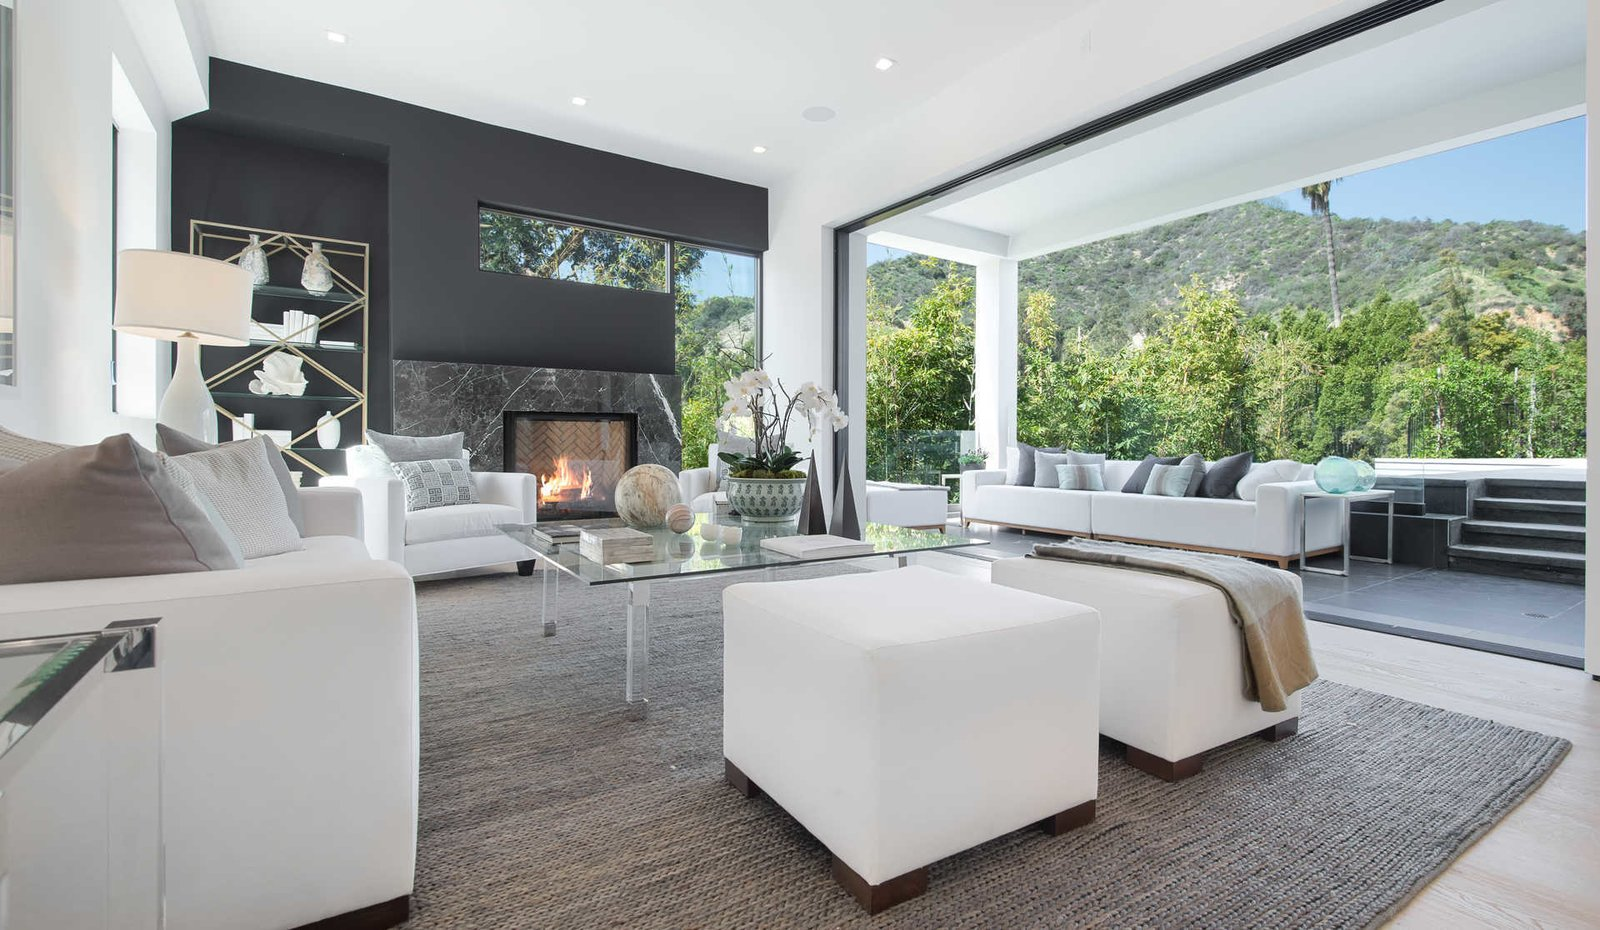 Sliding walls of glass reveal rolling canyons beyond the swimming pool and entertaining areas and create a seamless flow between indoor and outdoor living spaces.  Cherokee Contemporary by Luxury Homes + Lifestyle